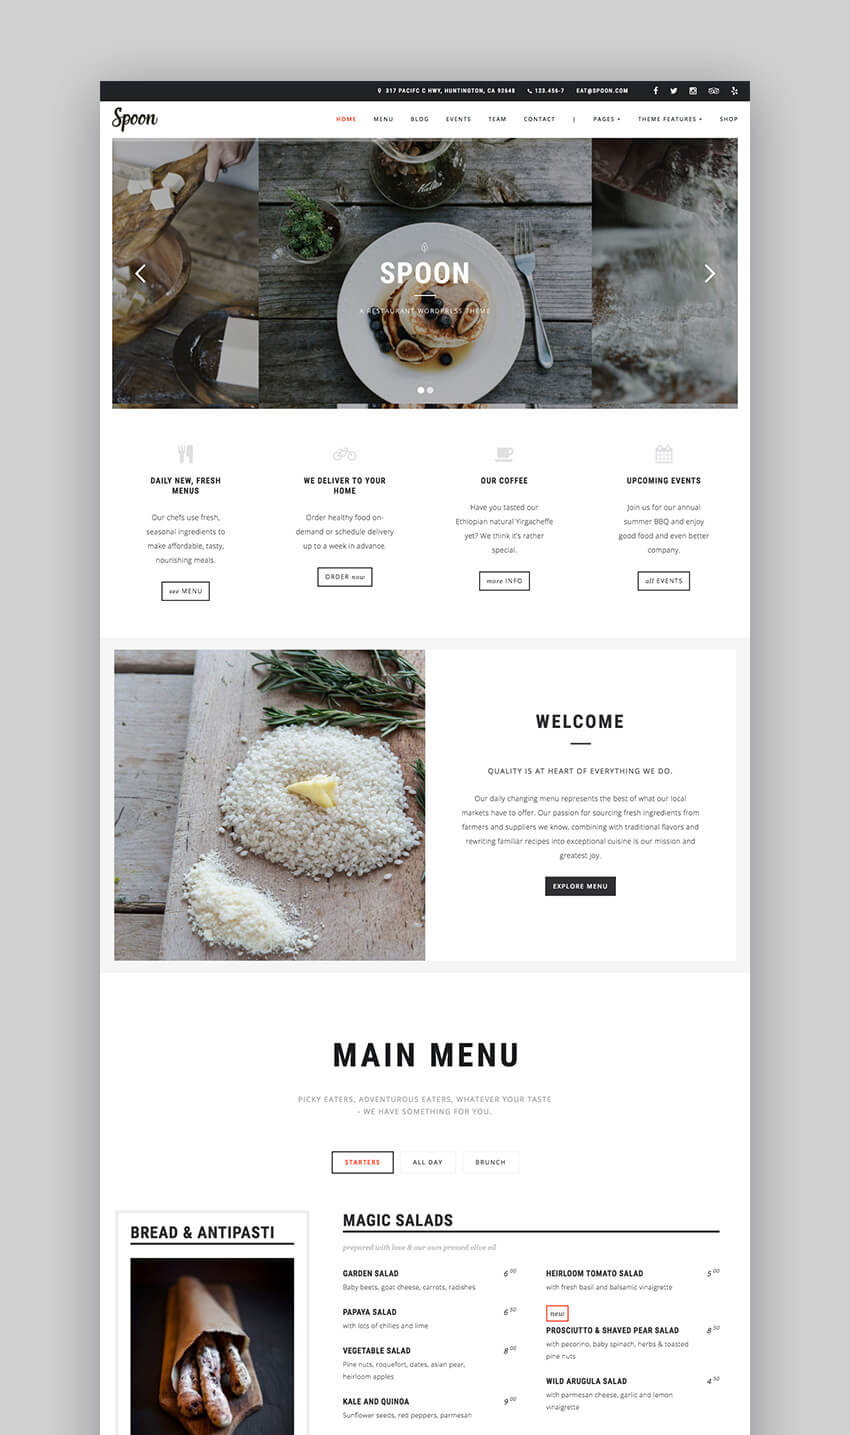 Souvent 22+ Best Restaurant WordPress Themes: With Premium Responsive Designs NH87